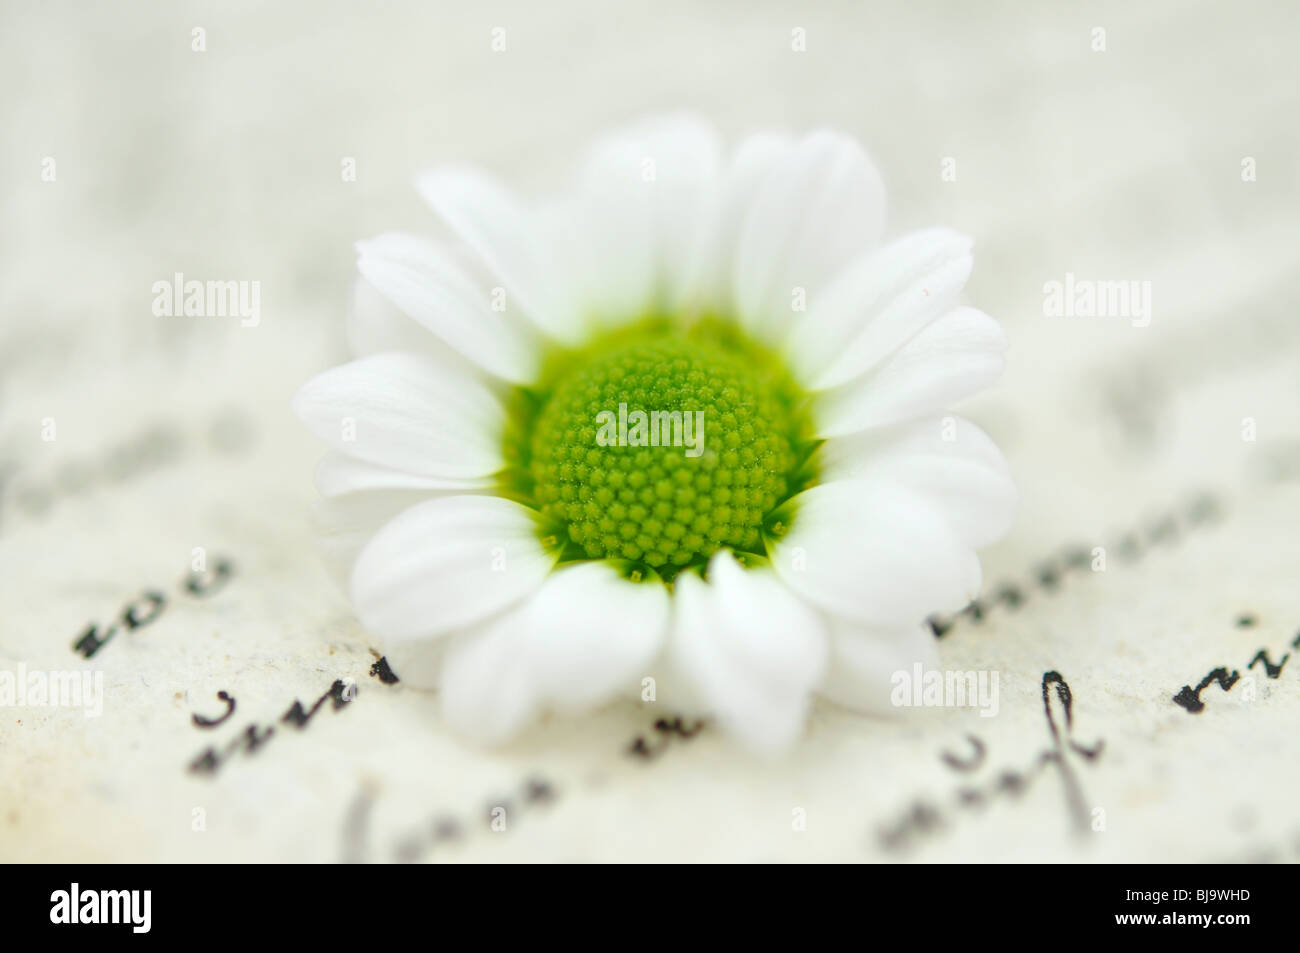 Daisy flower meaning stock photos daisy flower meaning stock tiny white daisy on a diary very shallow depth of field stock image izmirmasajfo